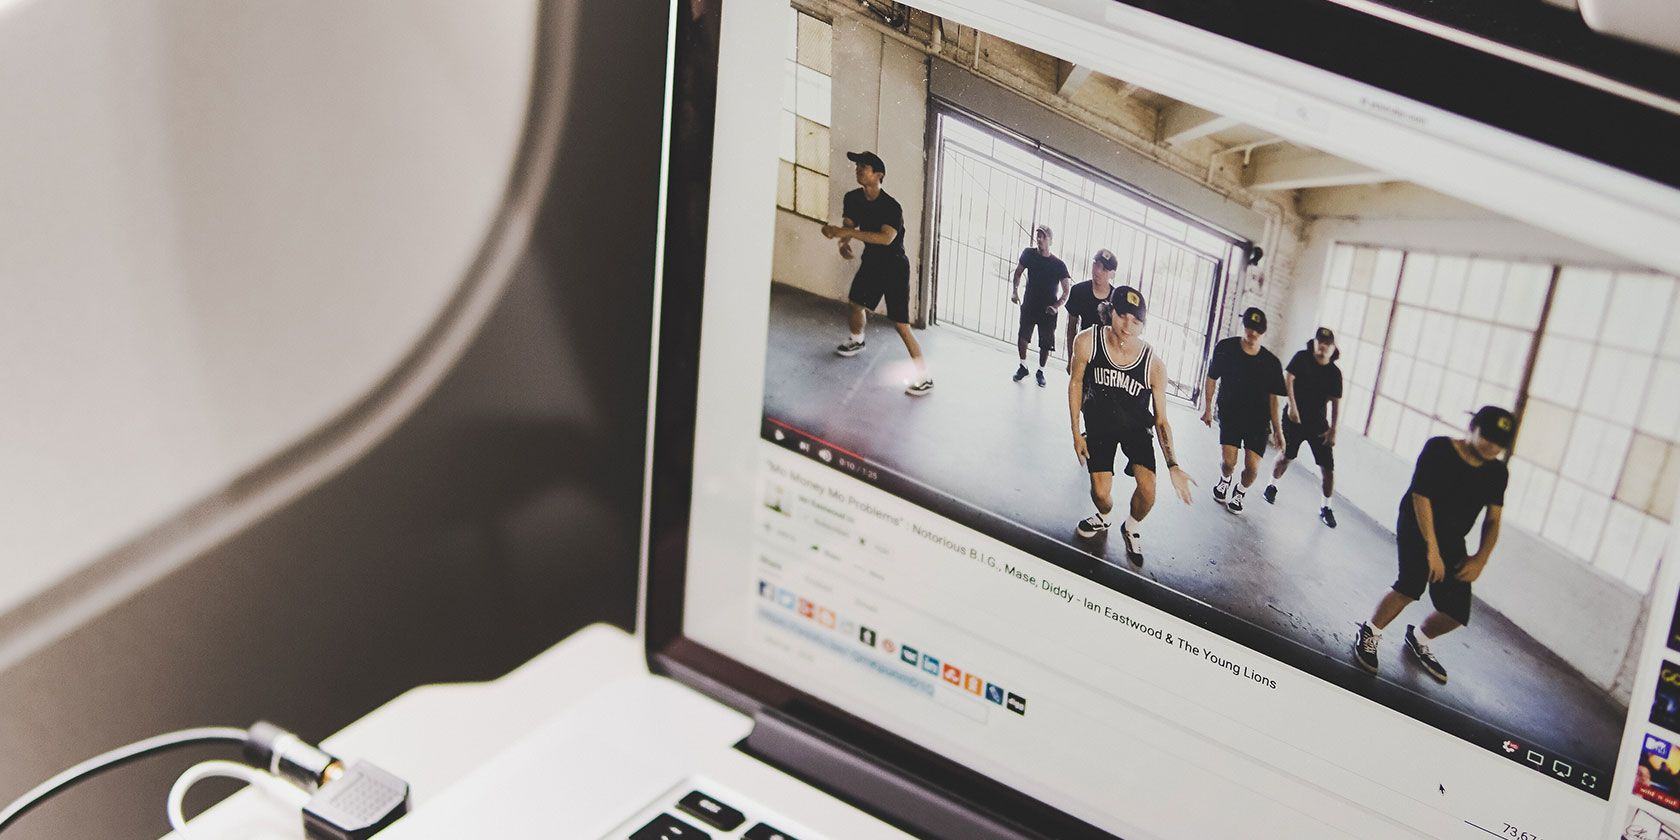 Best Laptop for Recording Youtube Videos